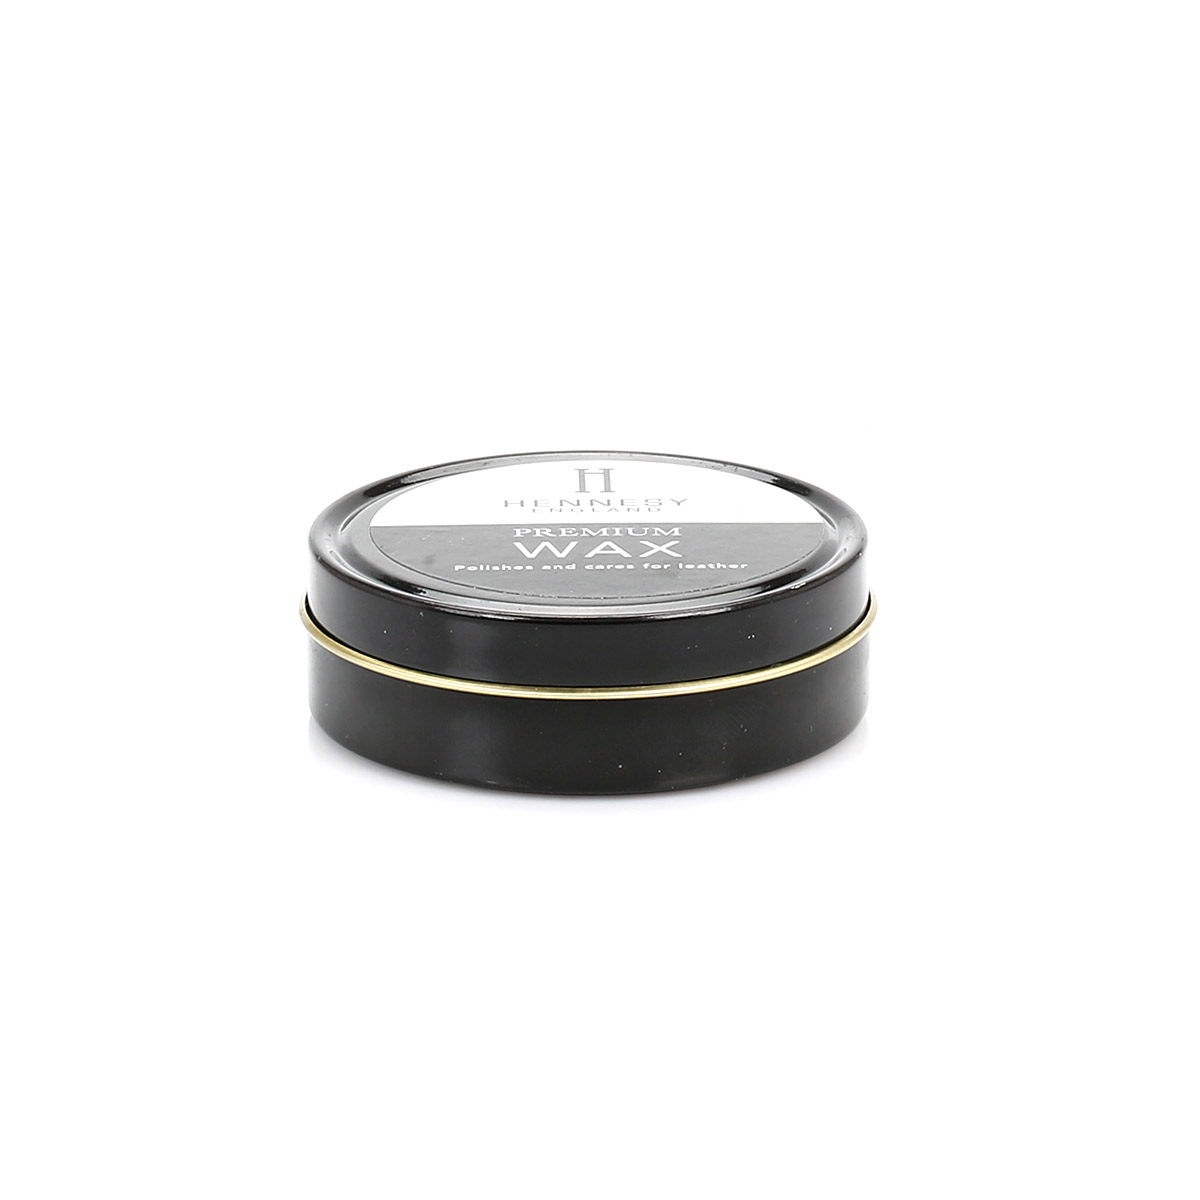 hennesy premium shoe care collection wax for leather